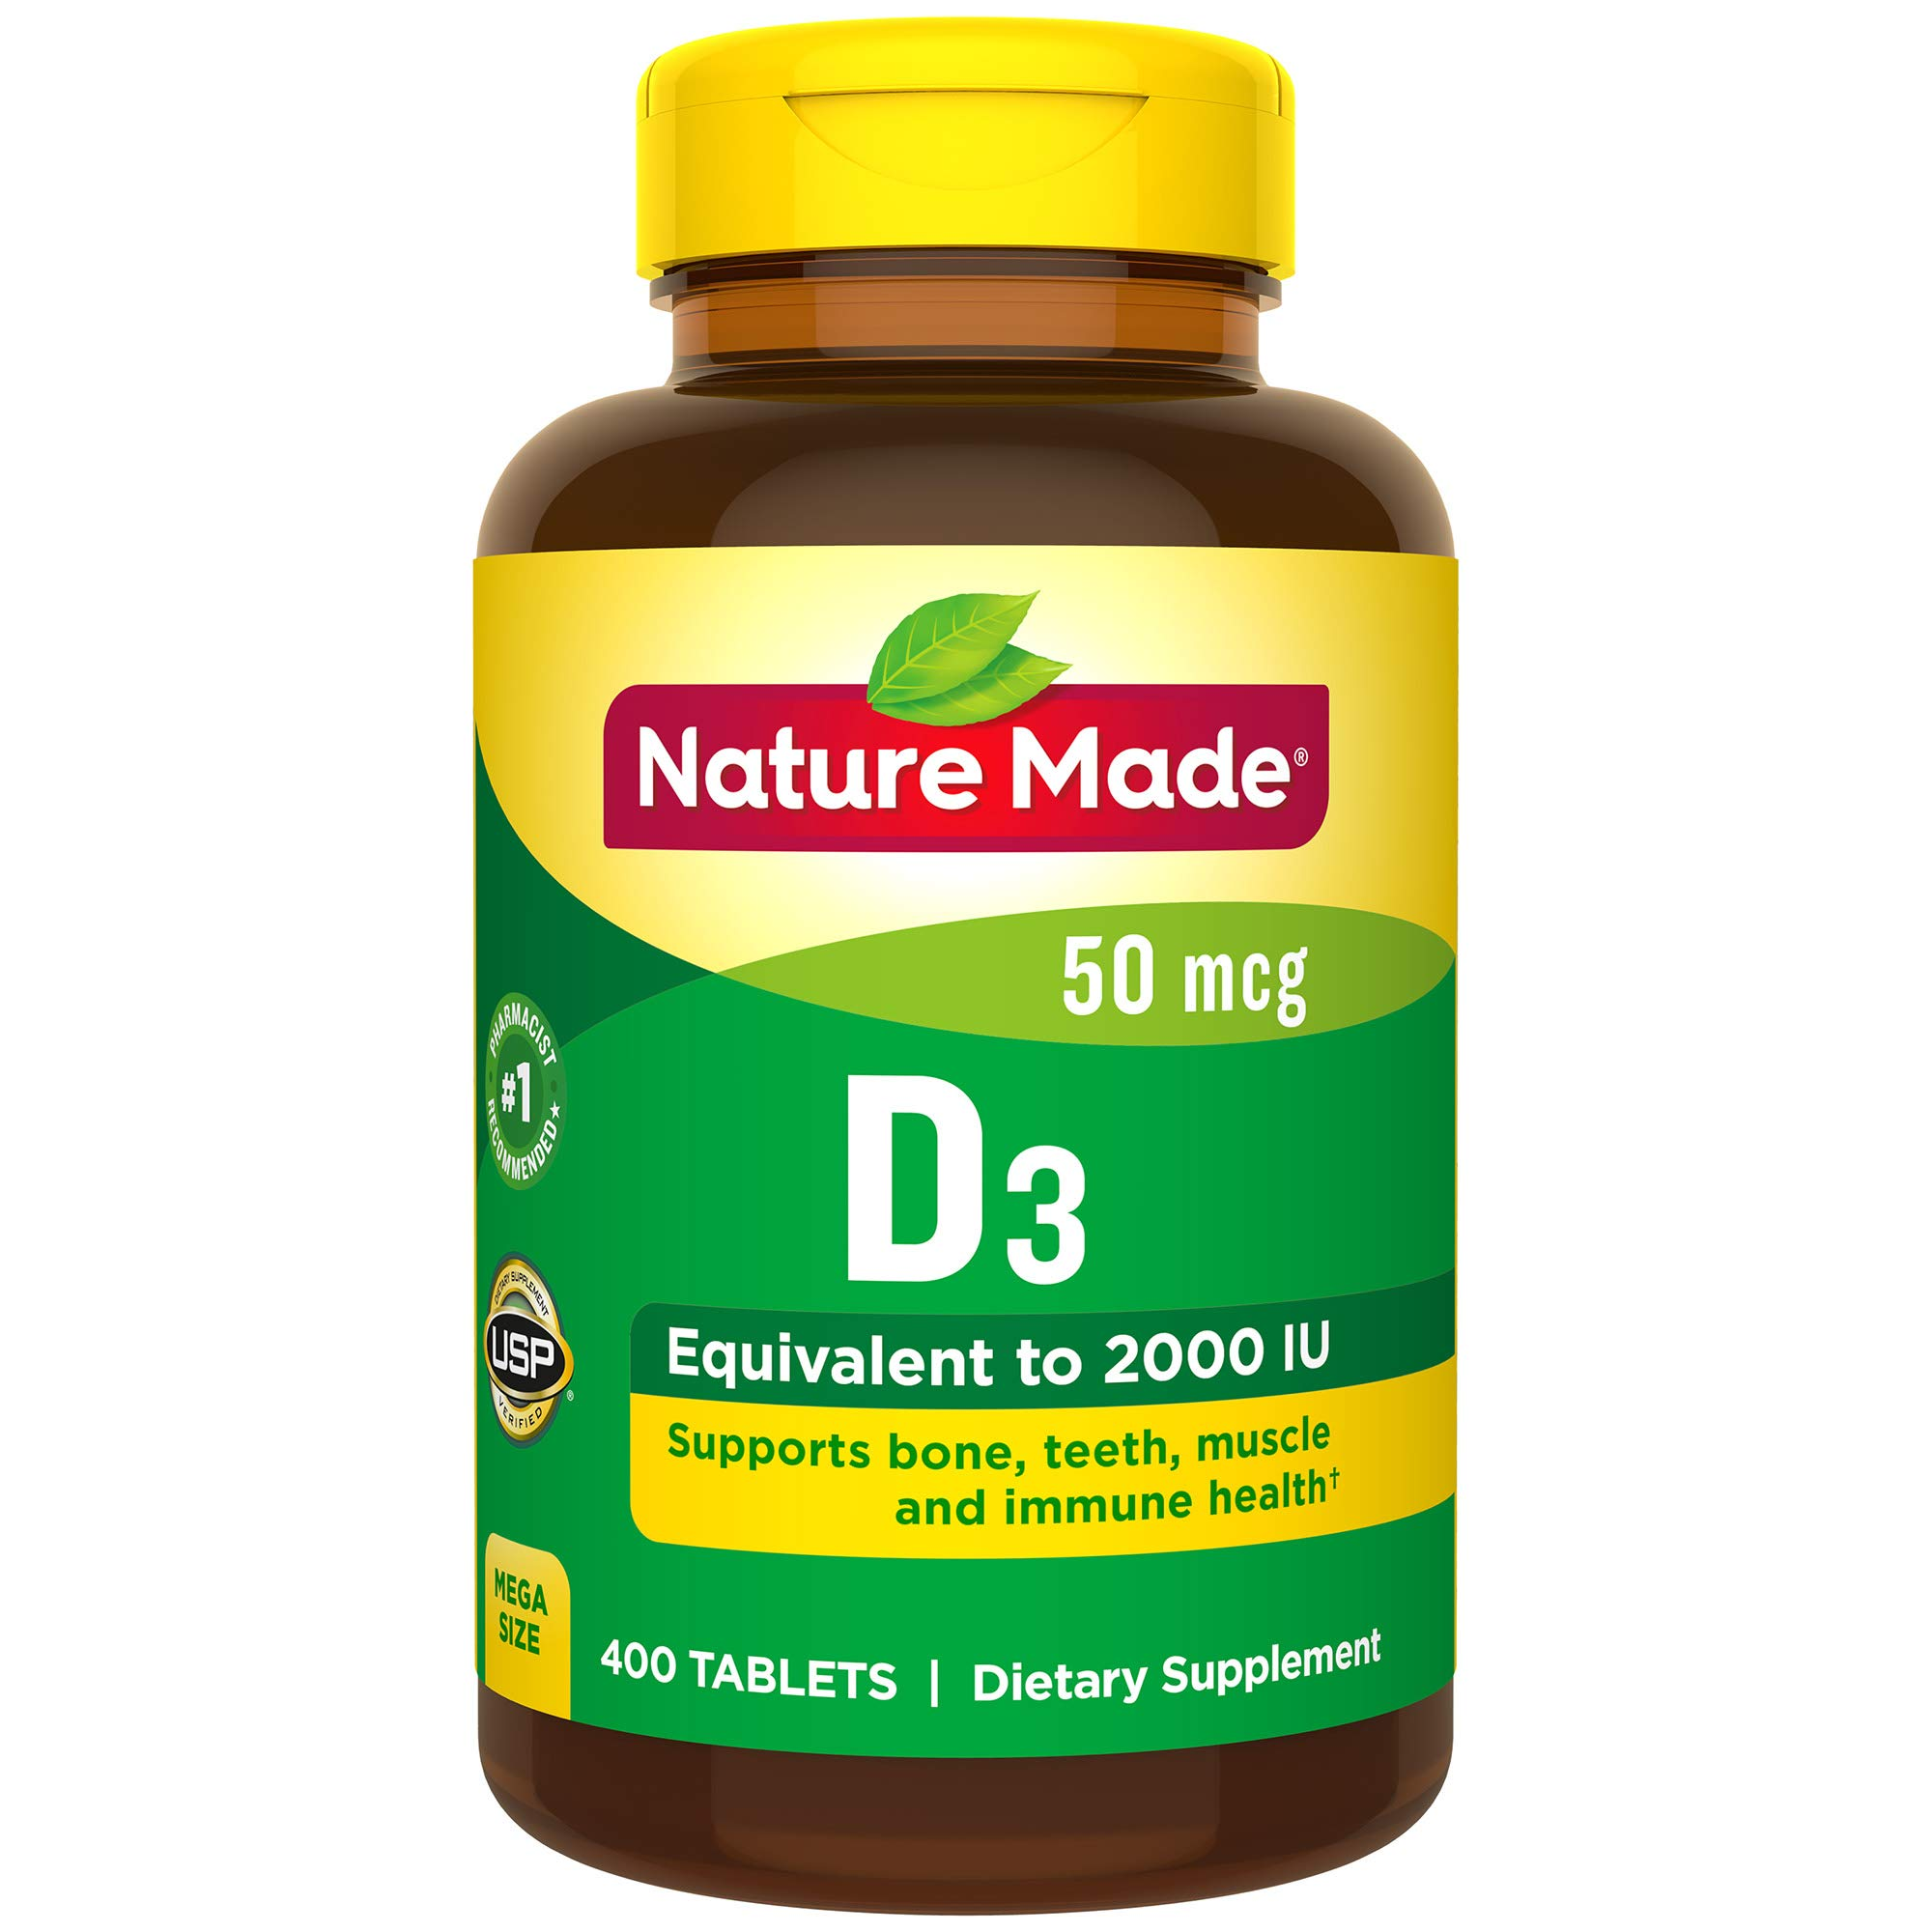 Nature Made Vitamin D3 2000 I.U. 400 Tablets Value Size by Nature Made